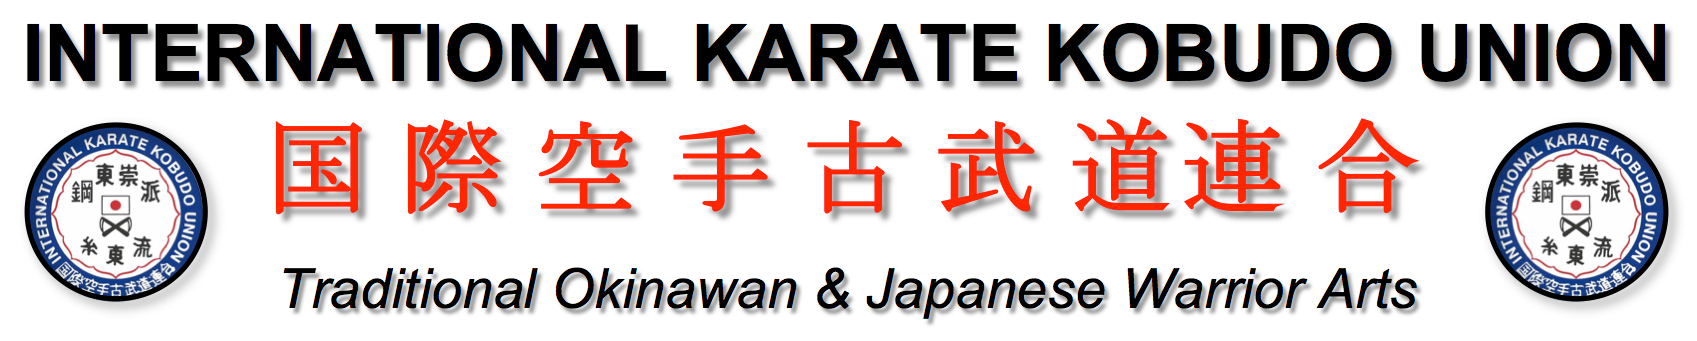 INTERNATIONAL KARATE KOBUDO UNION